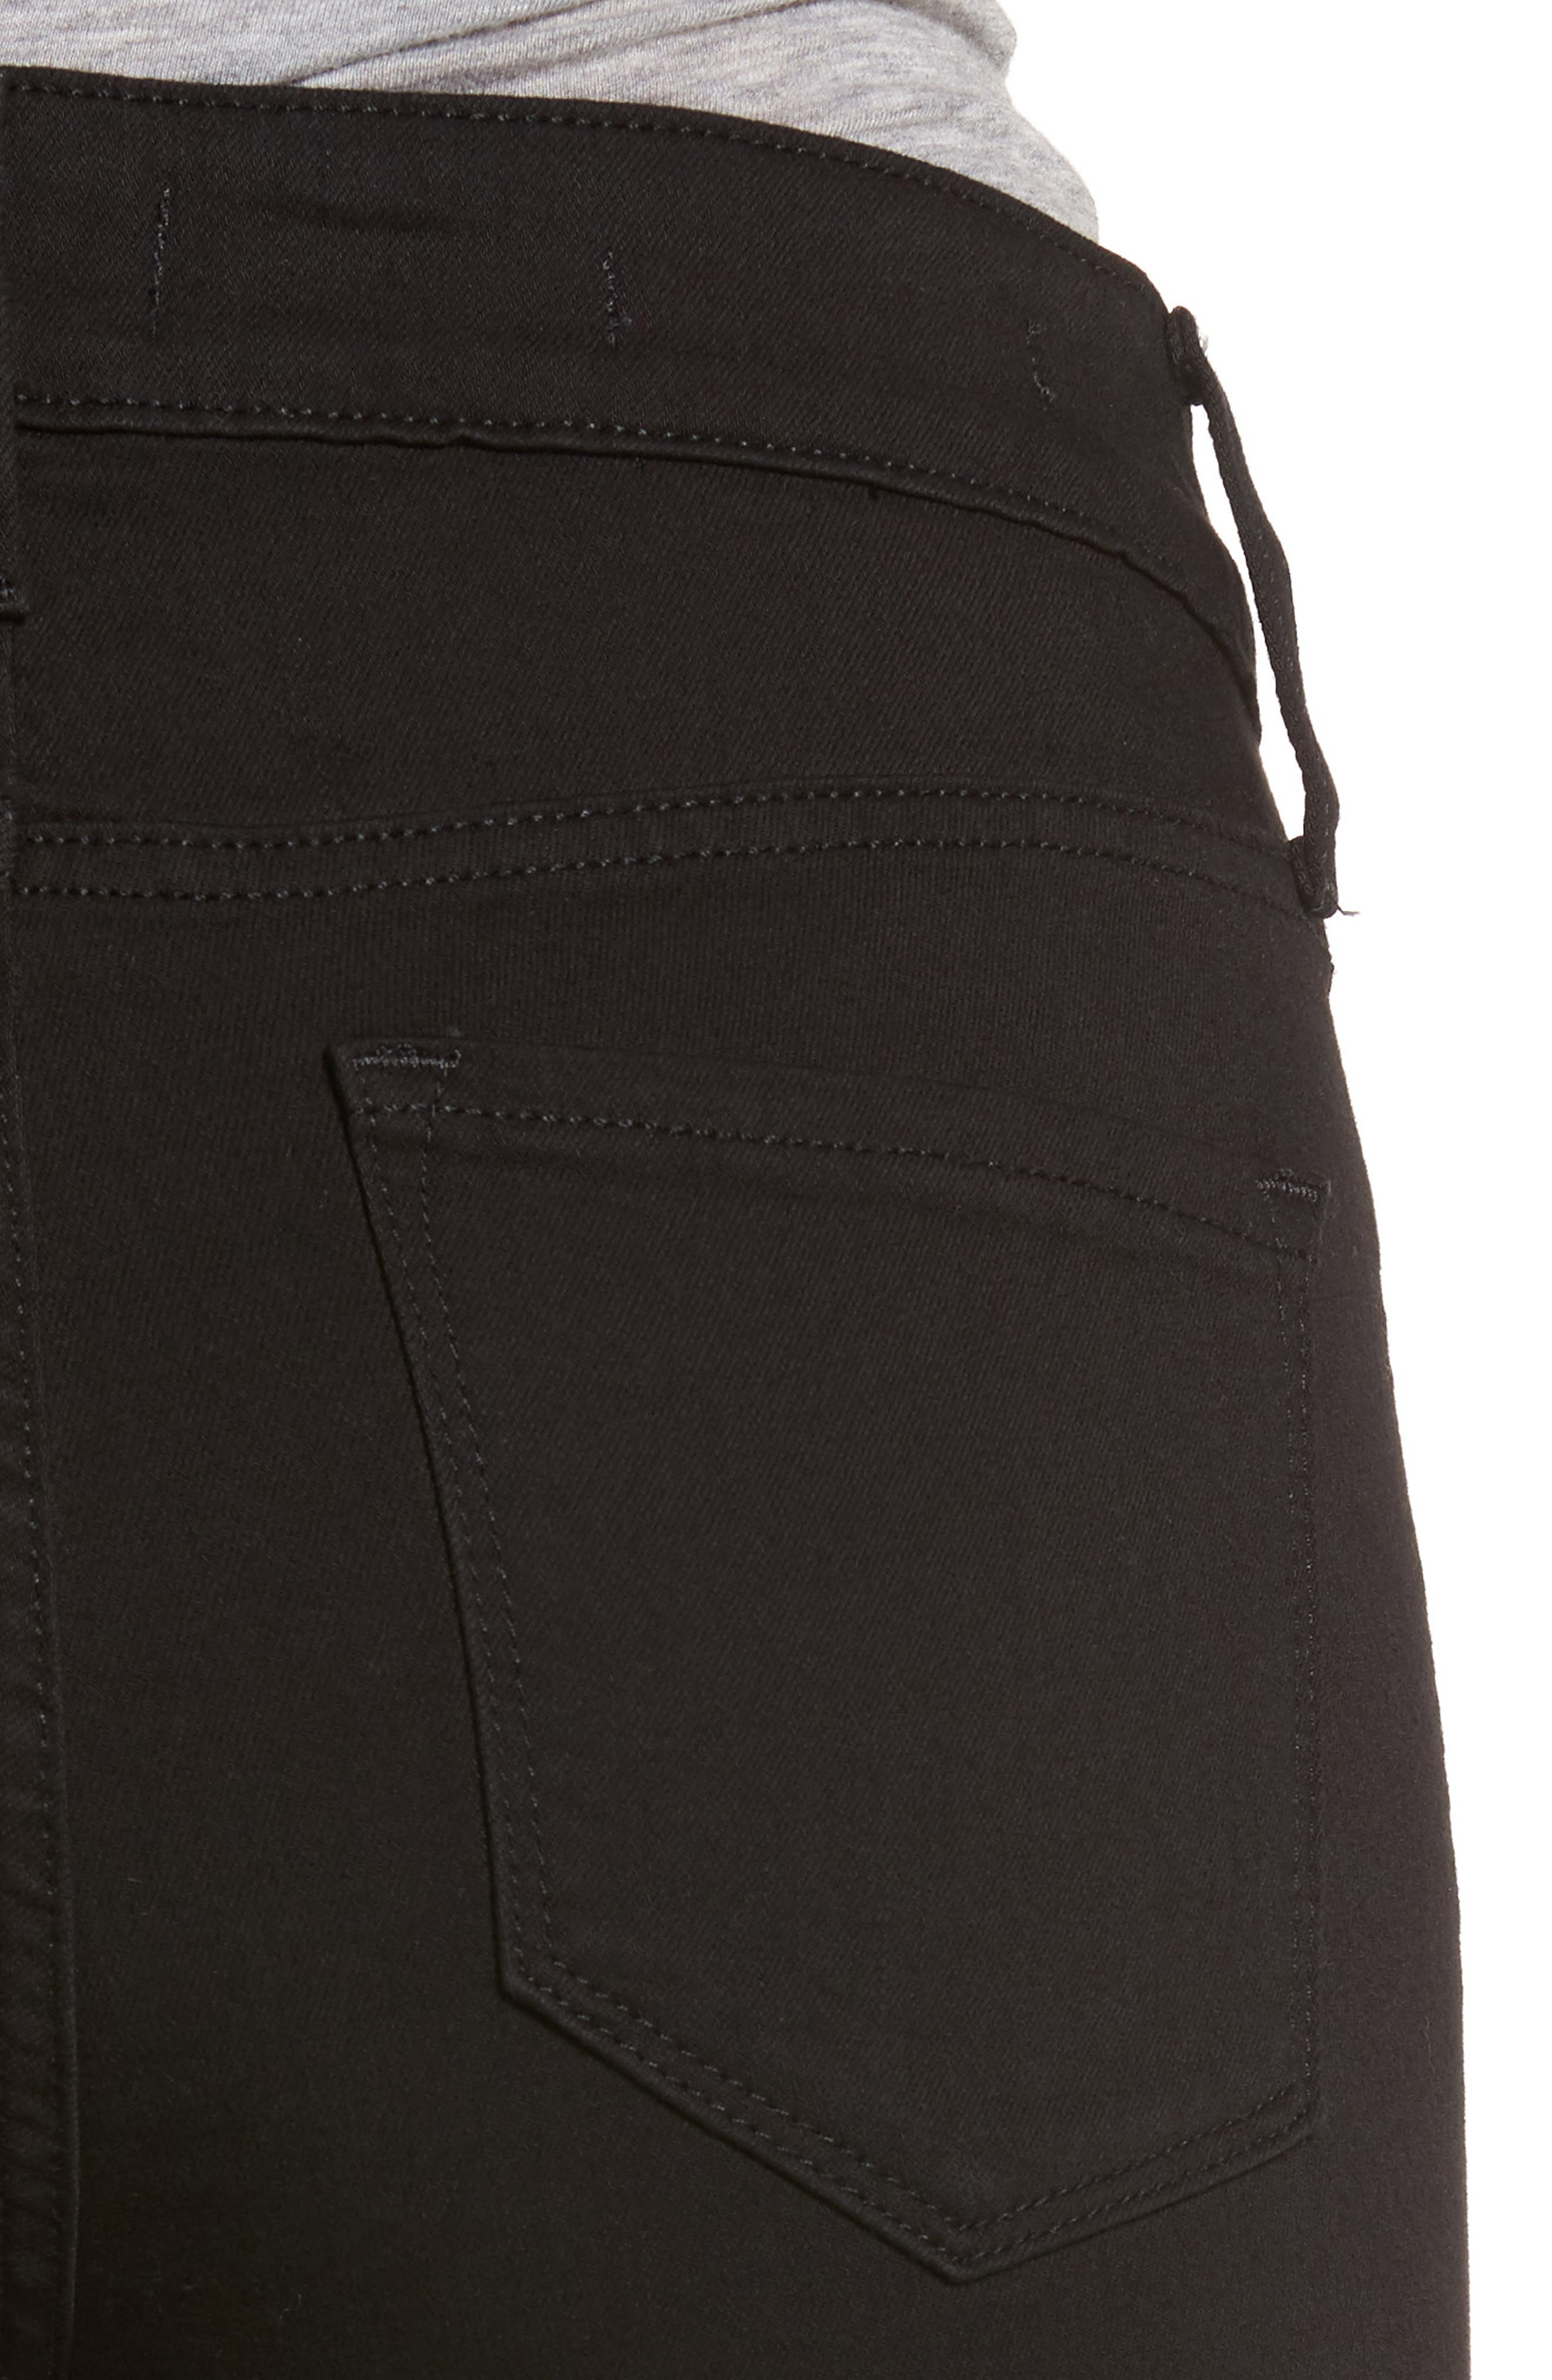 Ami Stretch Skinny Jeans,                             Alternate thumbnail 6, color,                             001